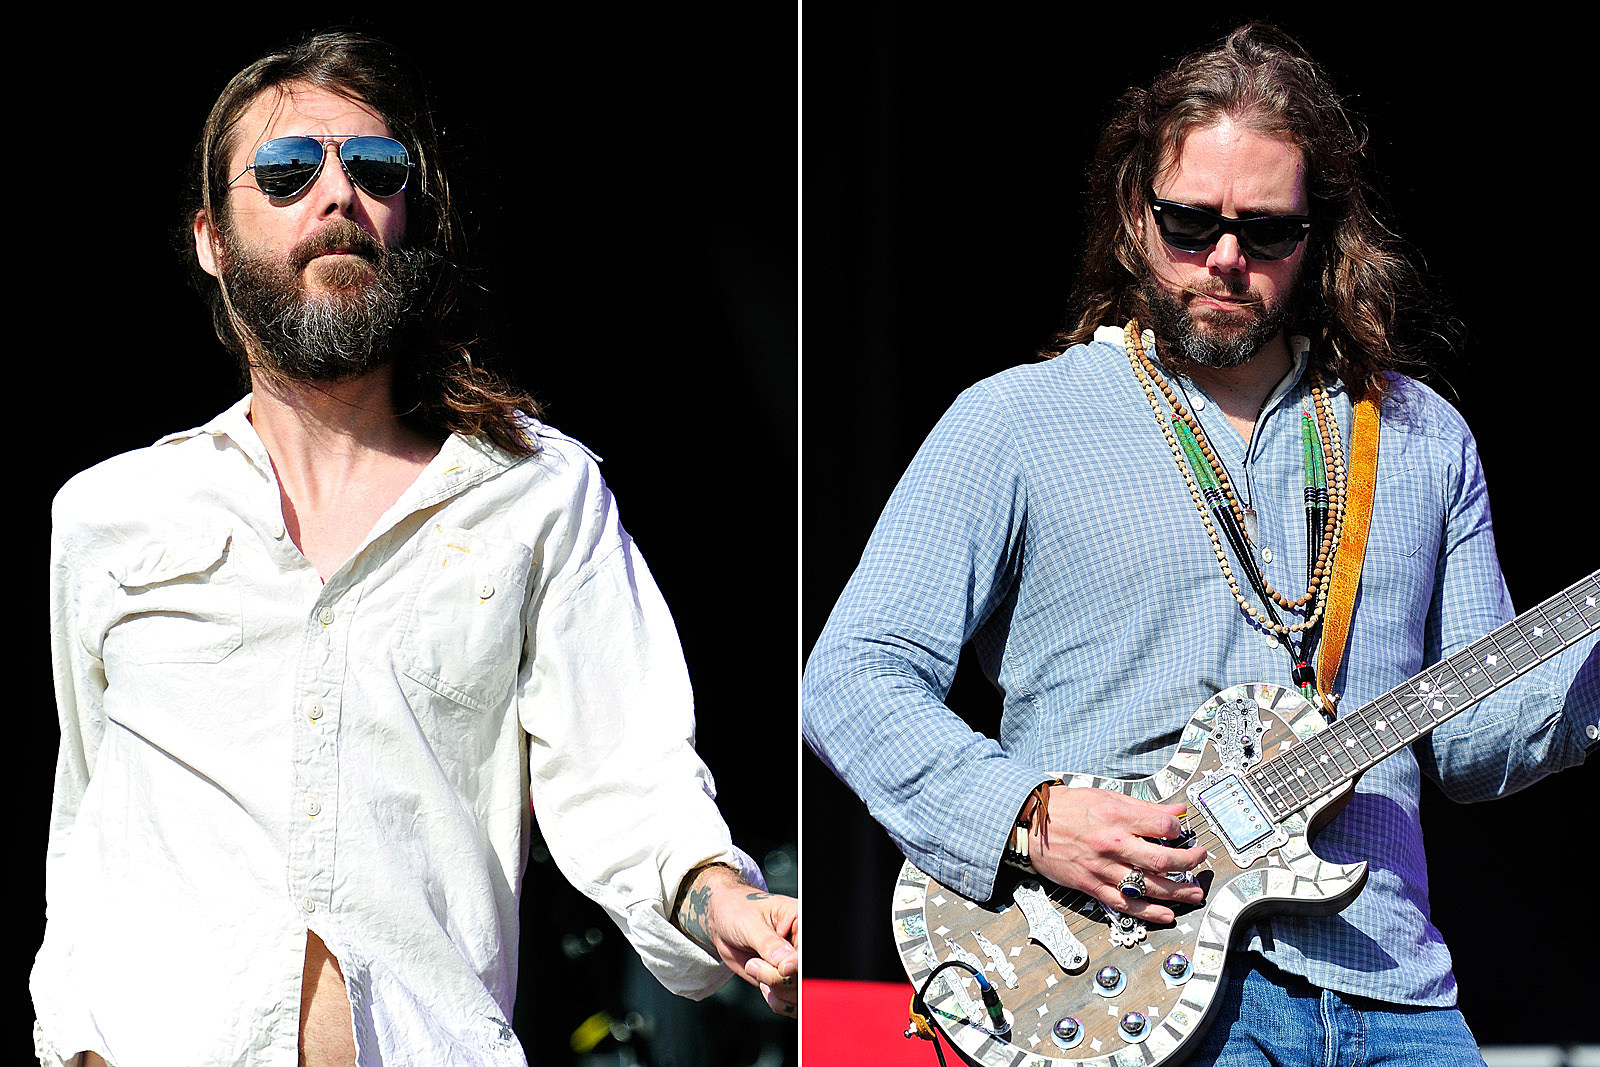 First Black Crowes Reunion Dates Leak, Will Play Entire Debut LP